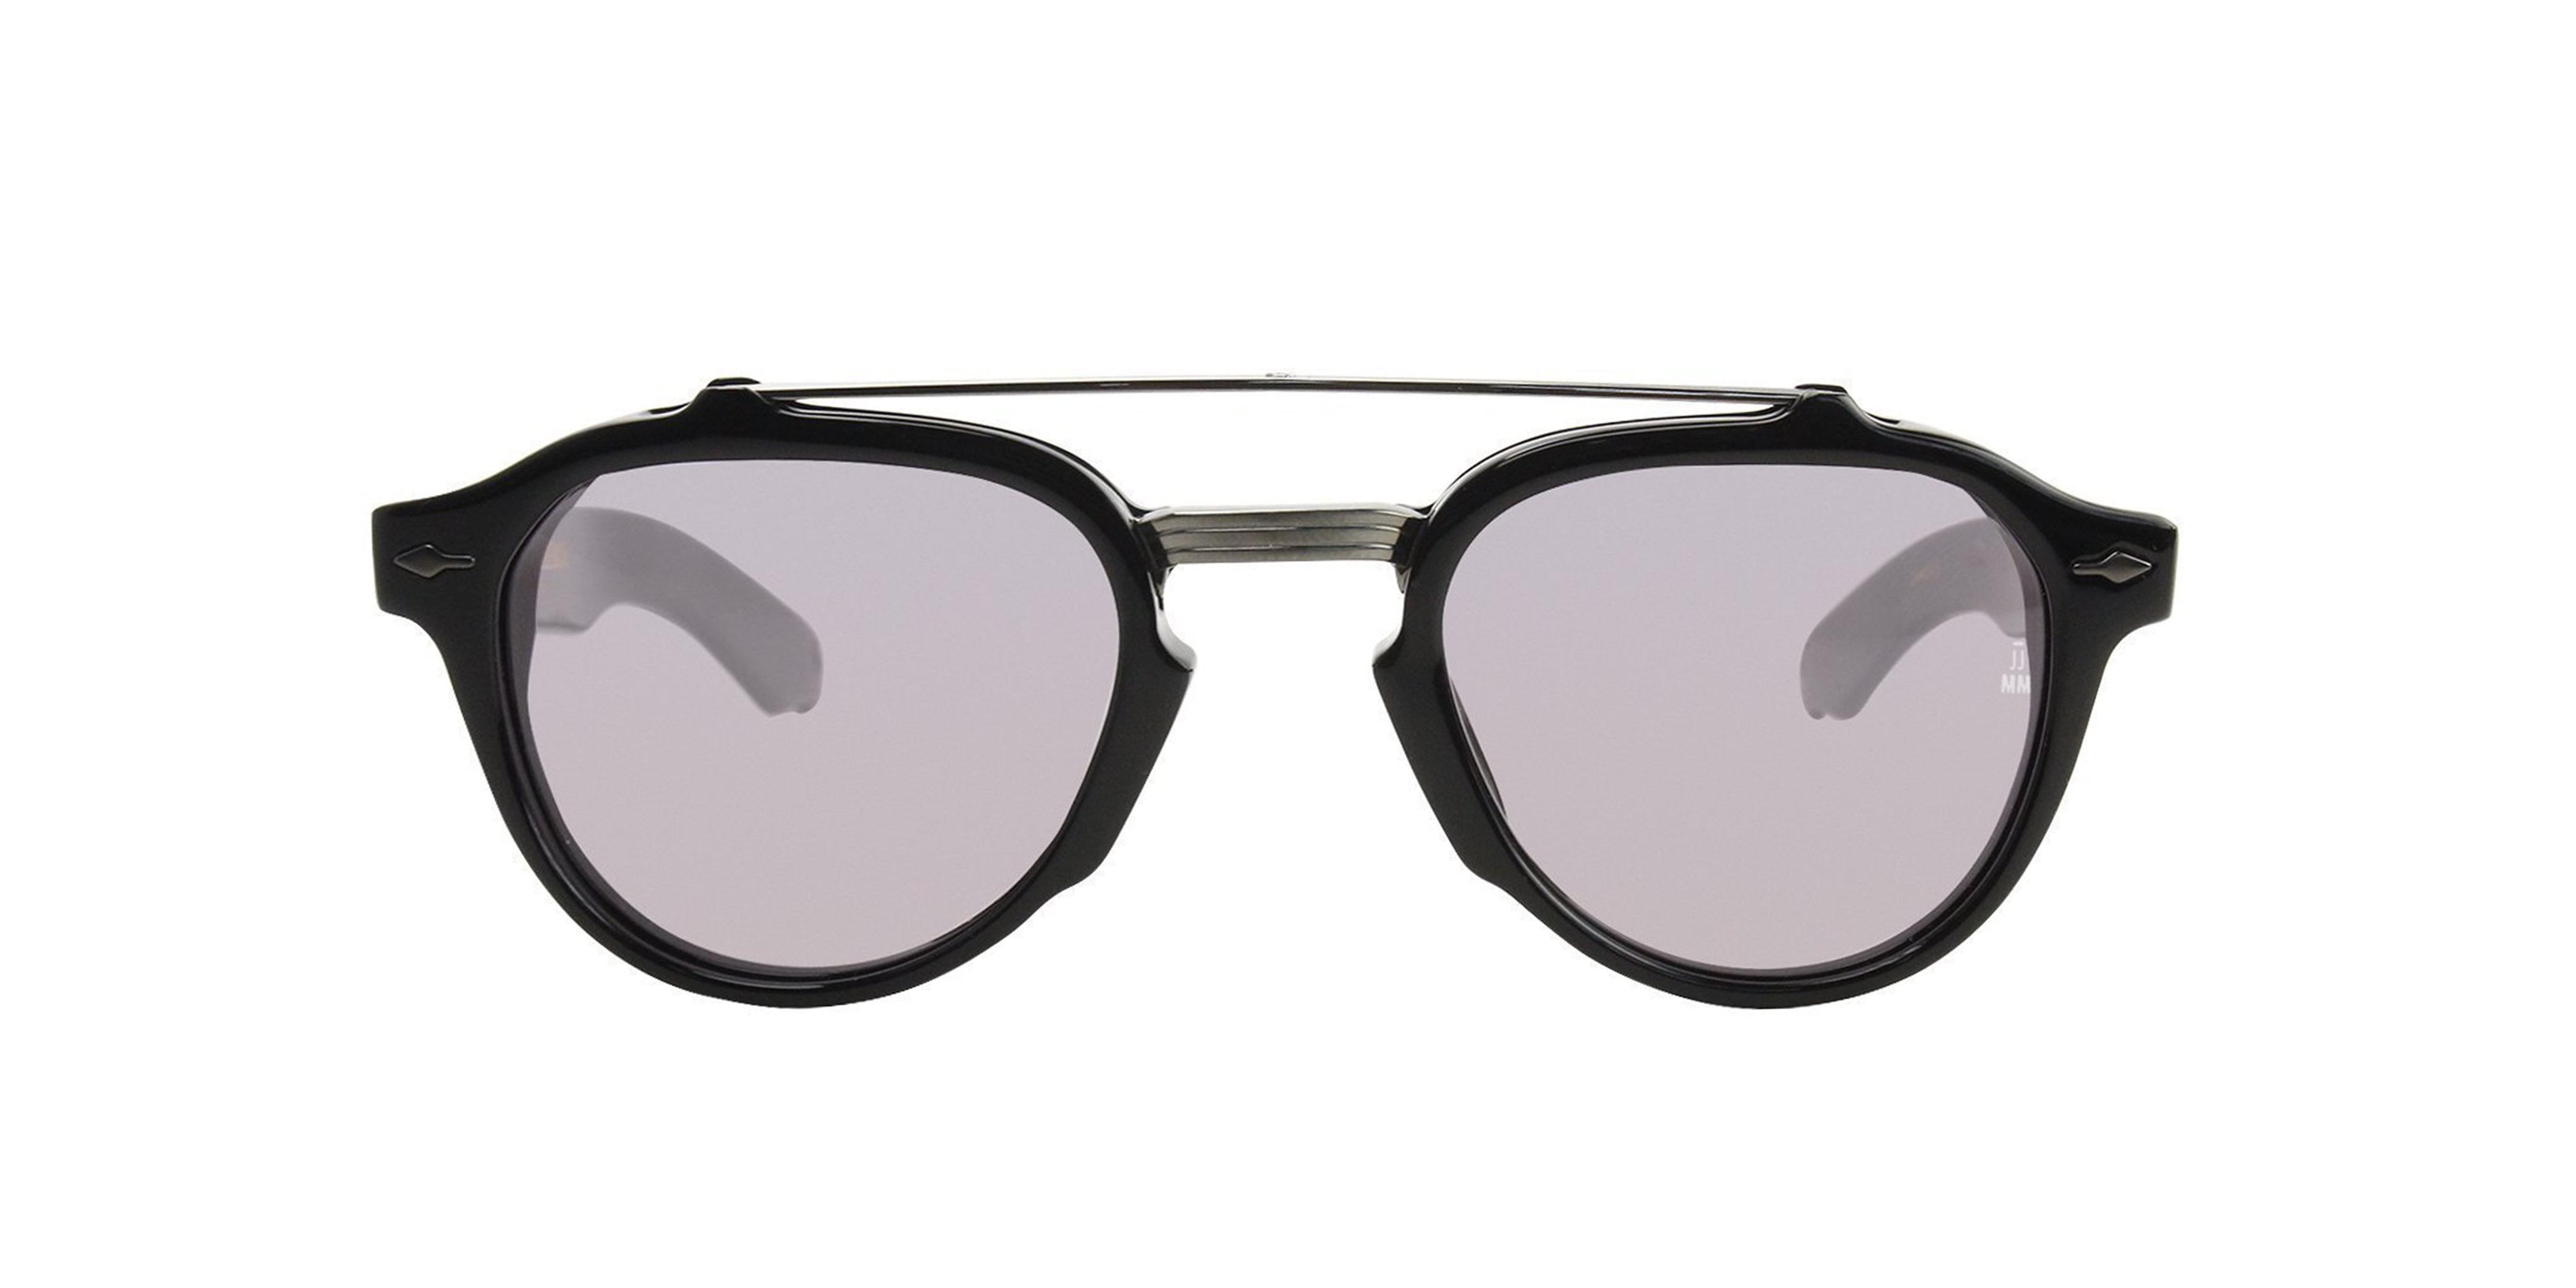 Jacques Marie Mage - Cherokee Black/Gray Oval Unisex Sunglasses - 41mm-Sunglasses-Designer Eyes